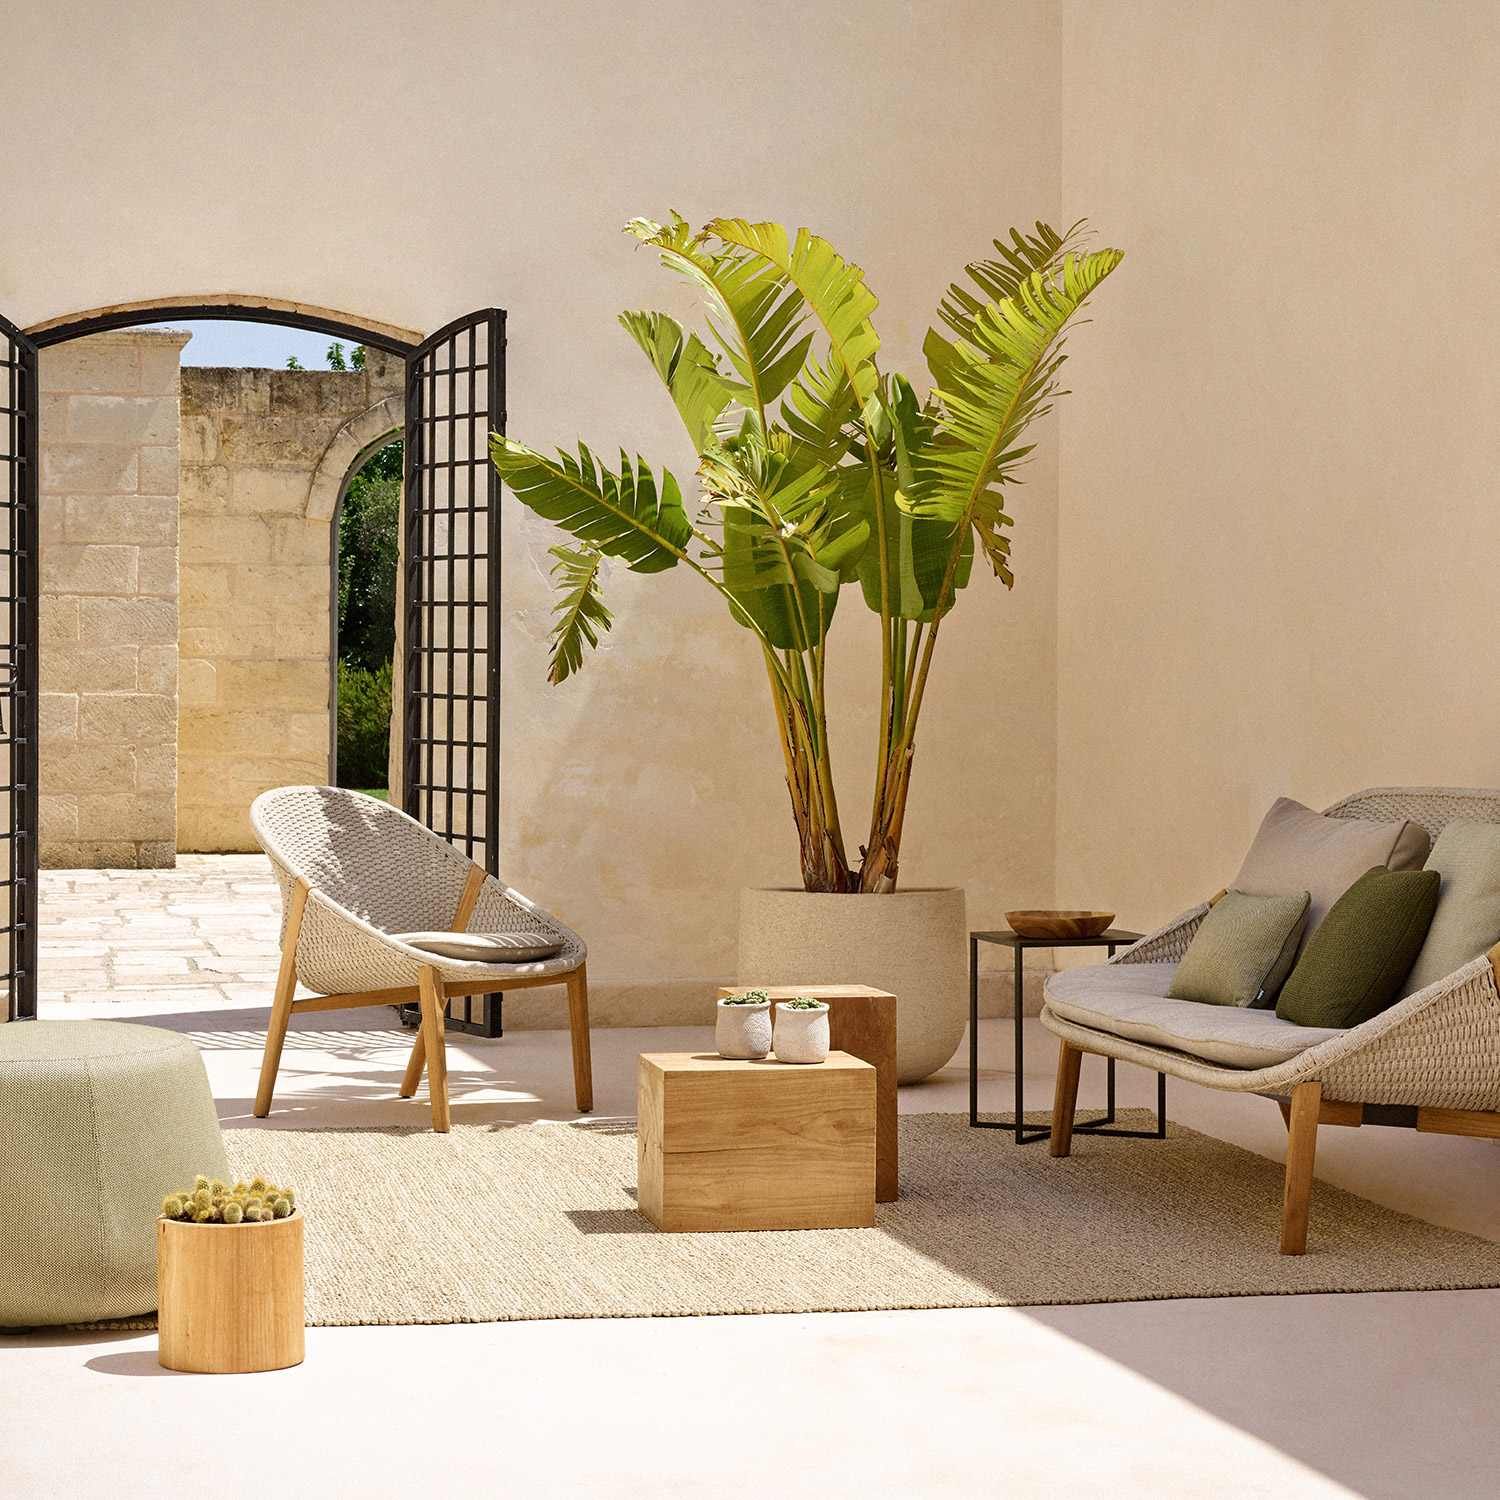 Elio outdoor furniture collection by Tribù